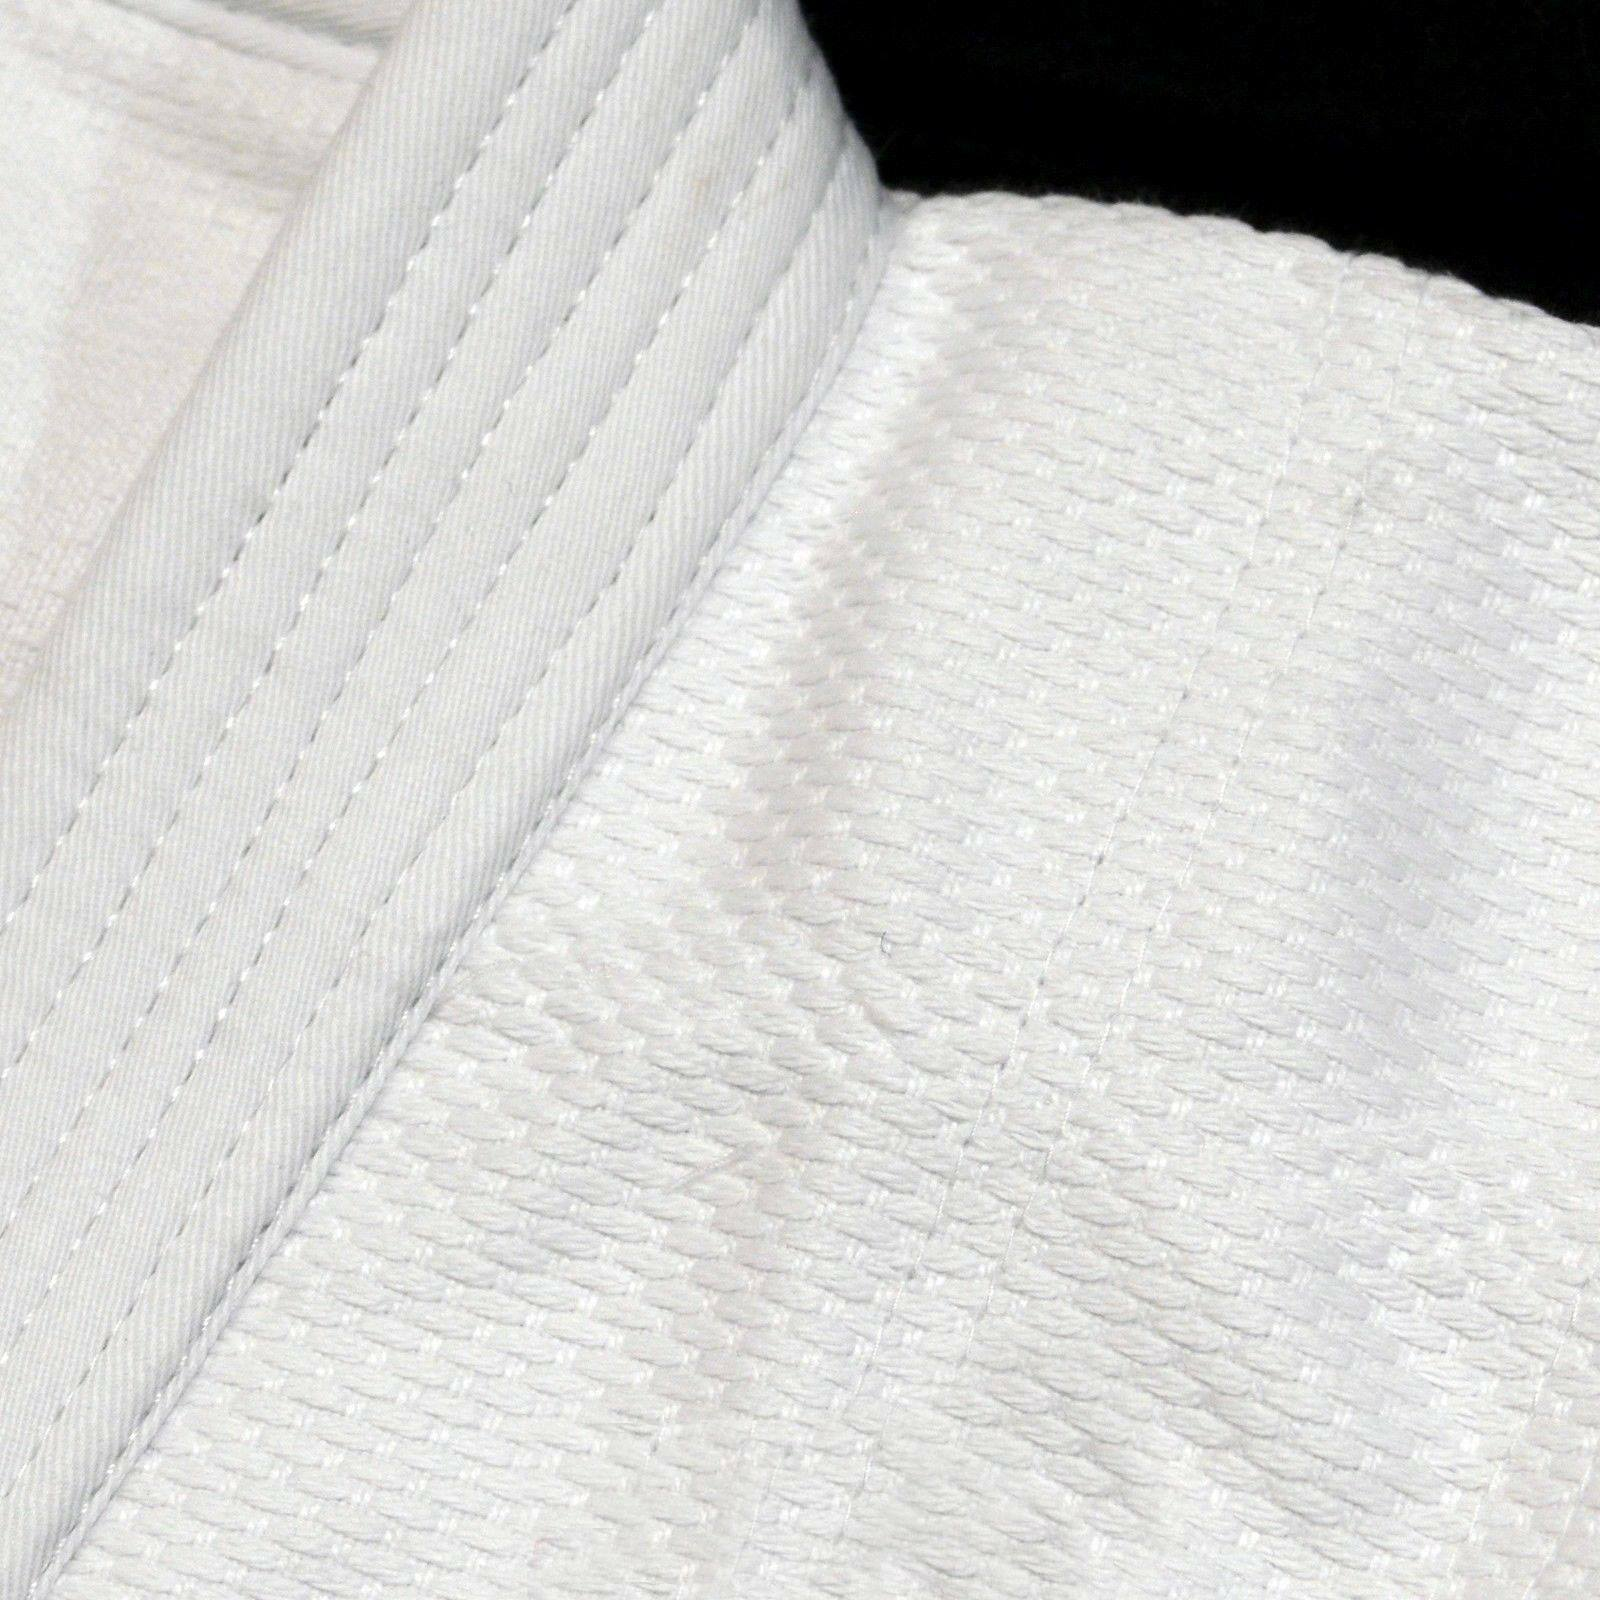 BZ White Super  Judo GI Training Complete Uniform with free belt    000-6 size